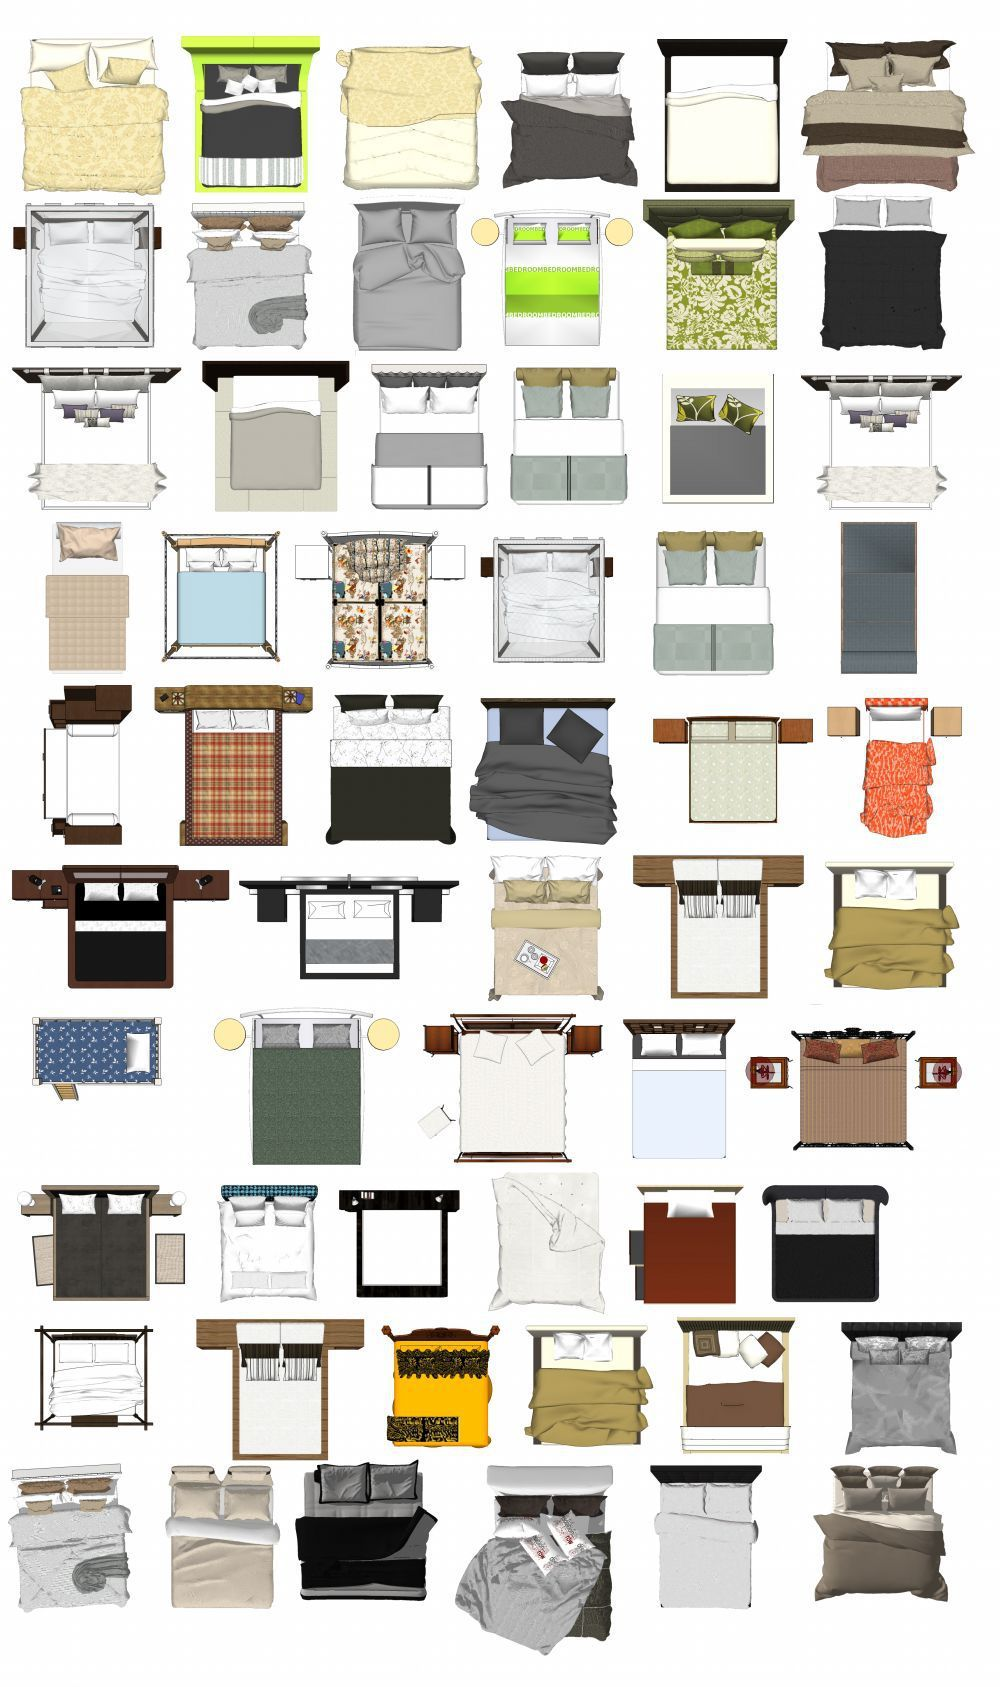 Photoshop psd bed blocks 1 interior design sketches for Rendering gratis